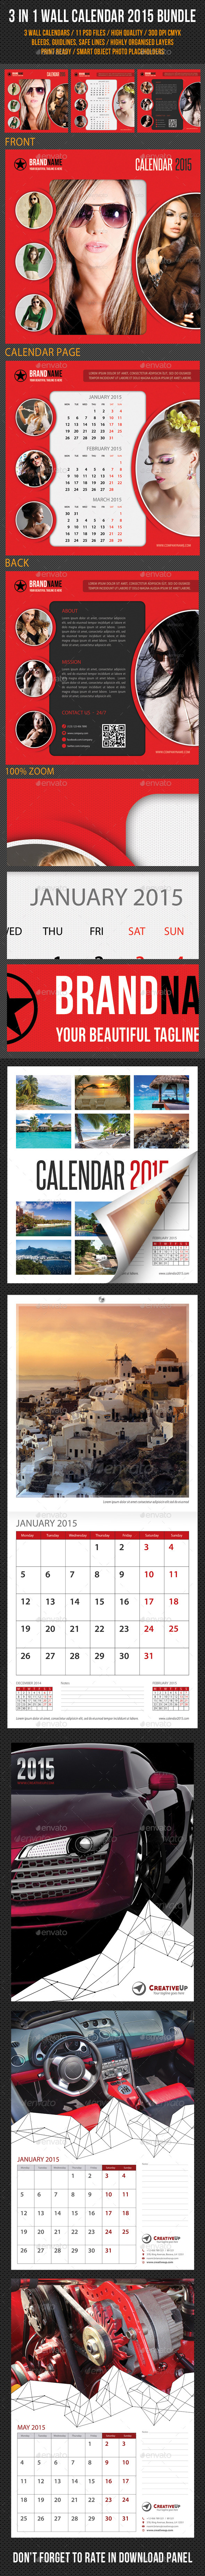 GraphicRiver 3 in 1 Wall Calendar 2015 Bundle 9345001